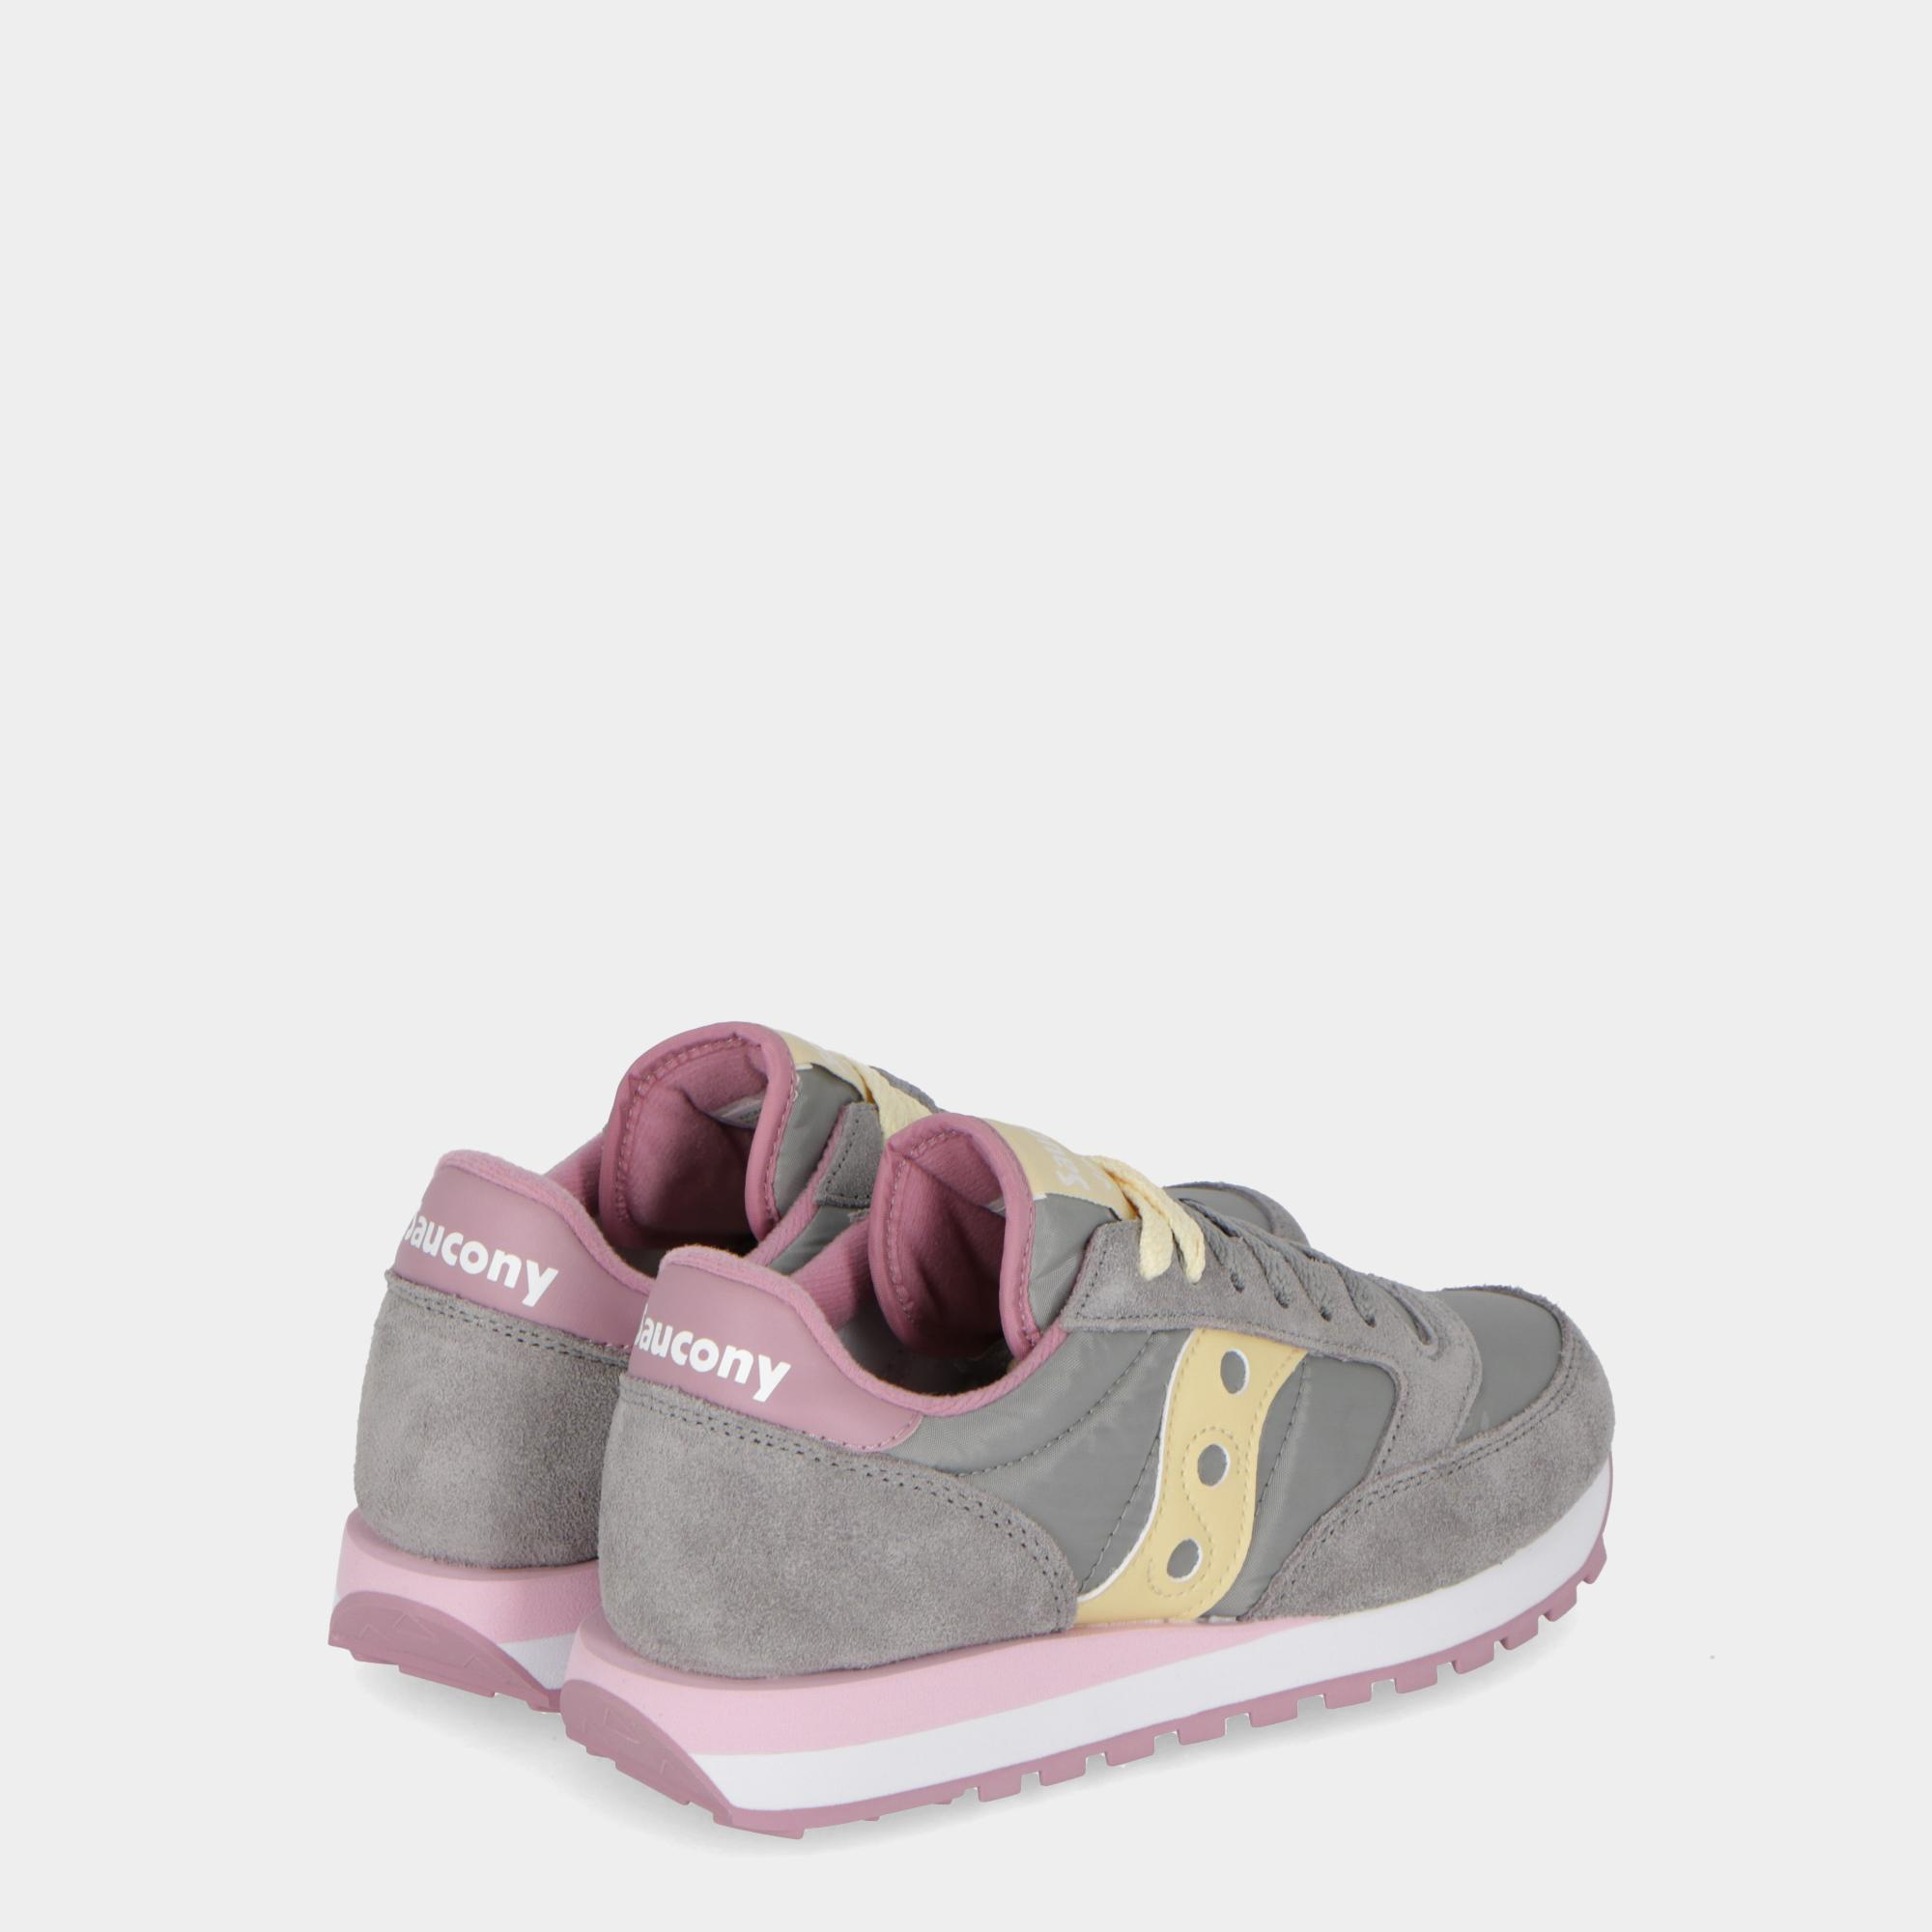 reputable site 6df05 2885b SAUCONY JAZZ O'